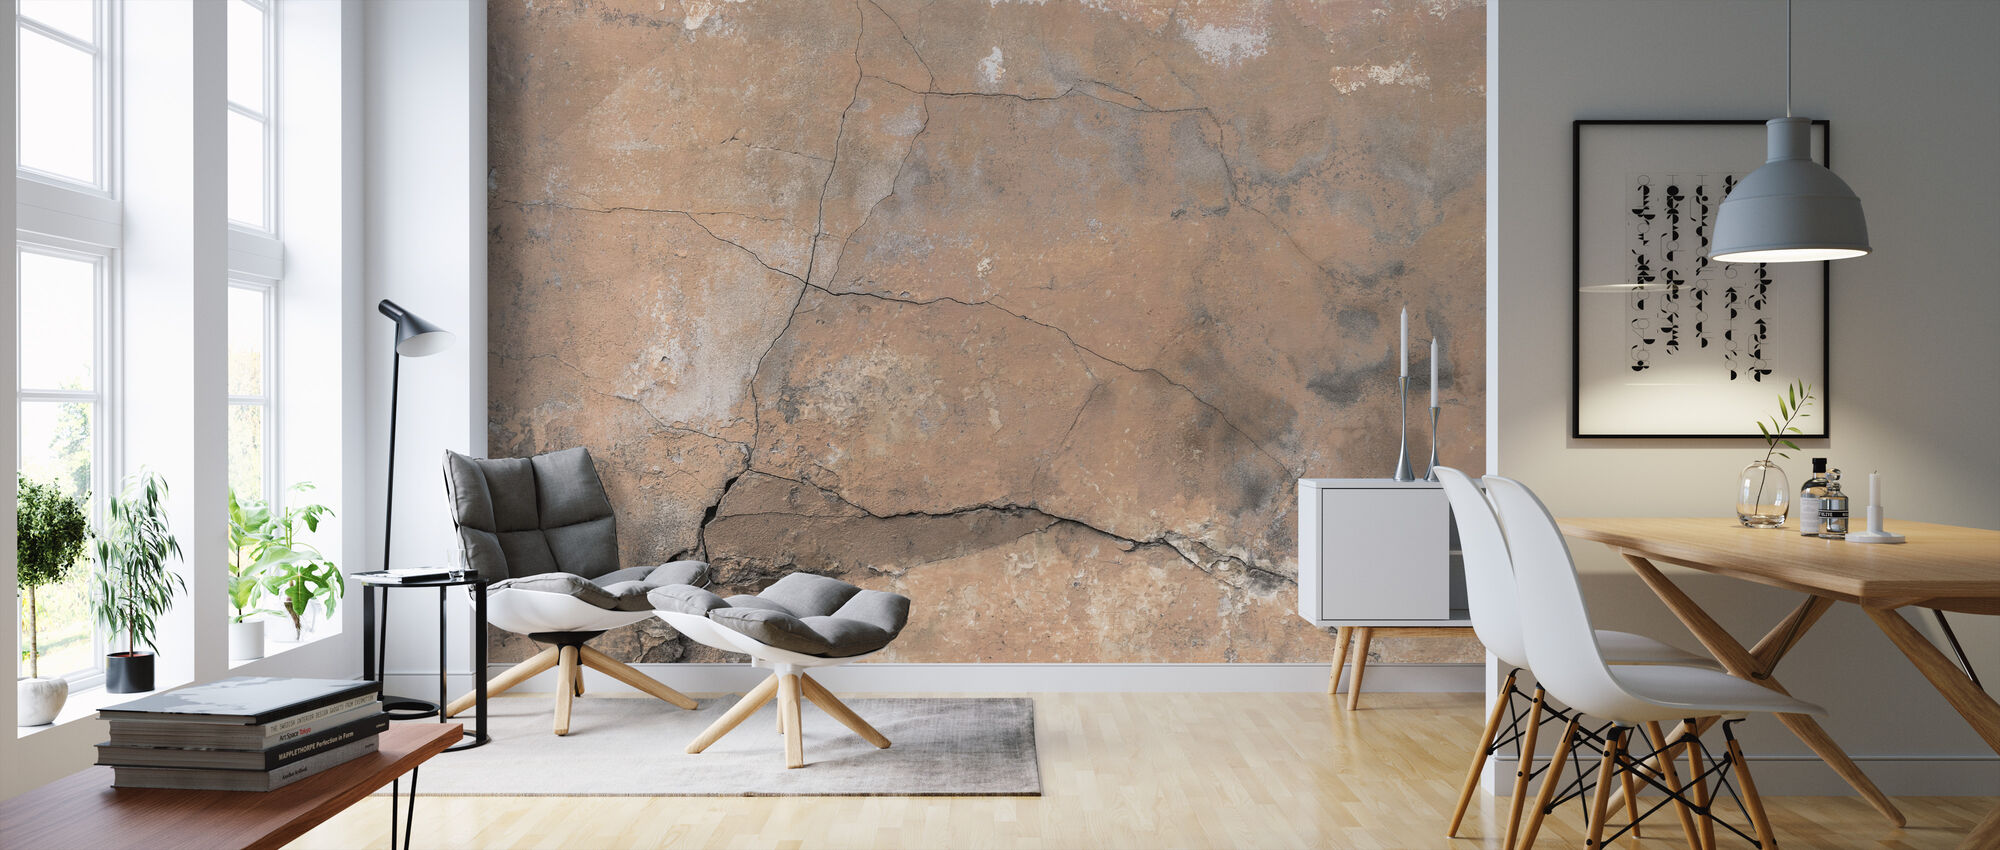 Cracked Stone Wall - Wallpaper - Living Room